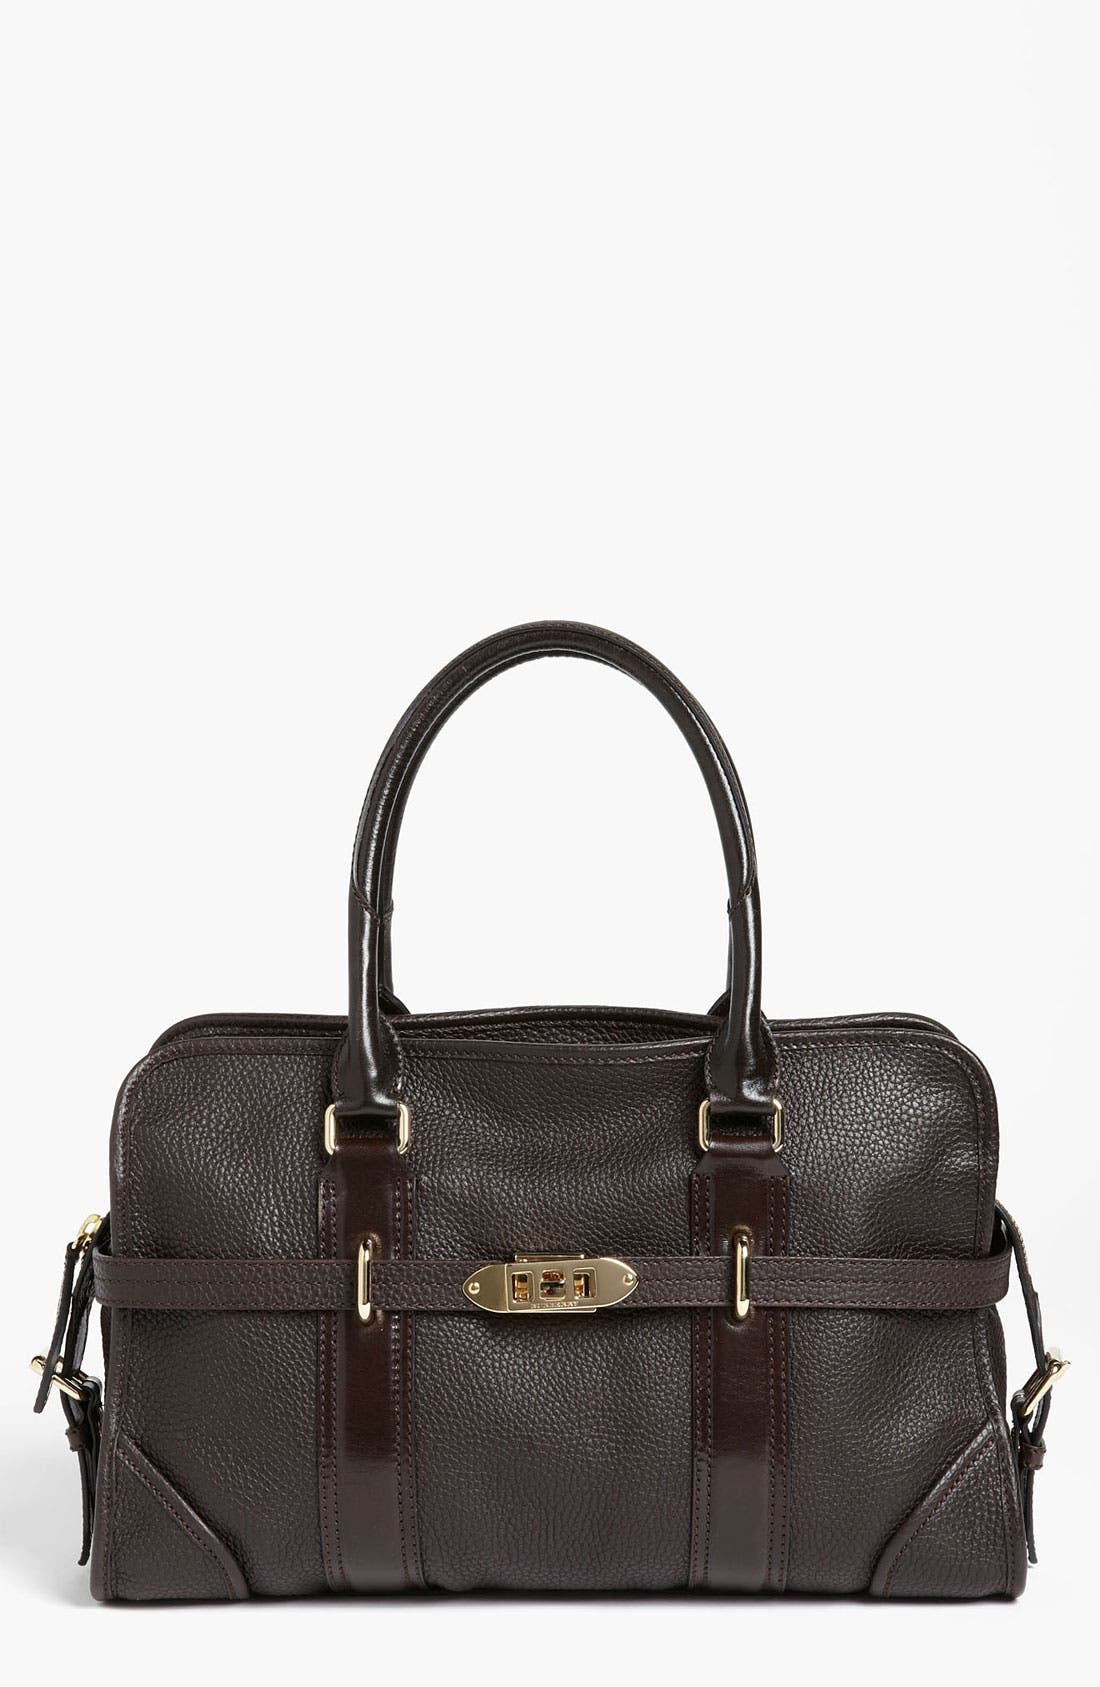 Alternate Image 1 Selected - Burberry 'London Grainy' Leather Tote